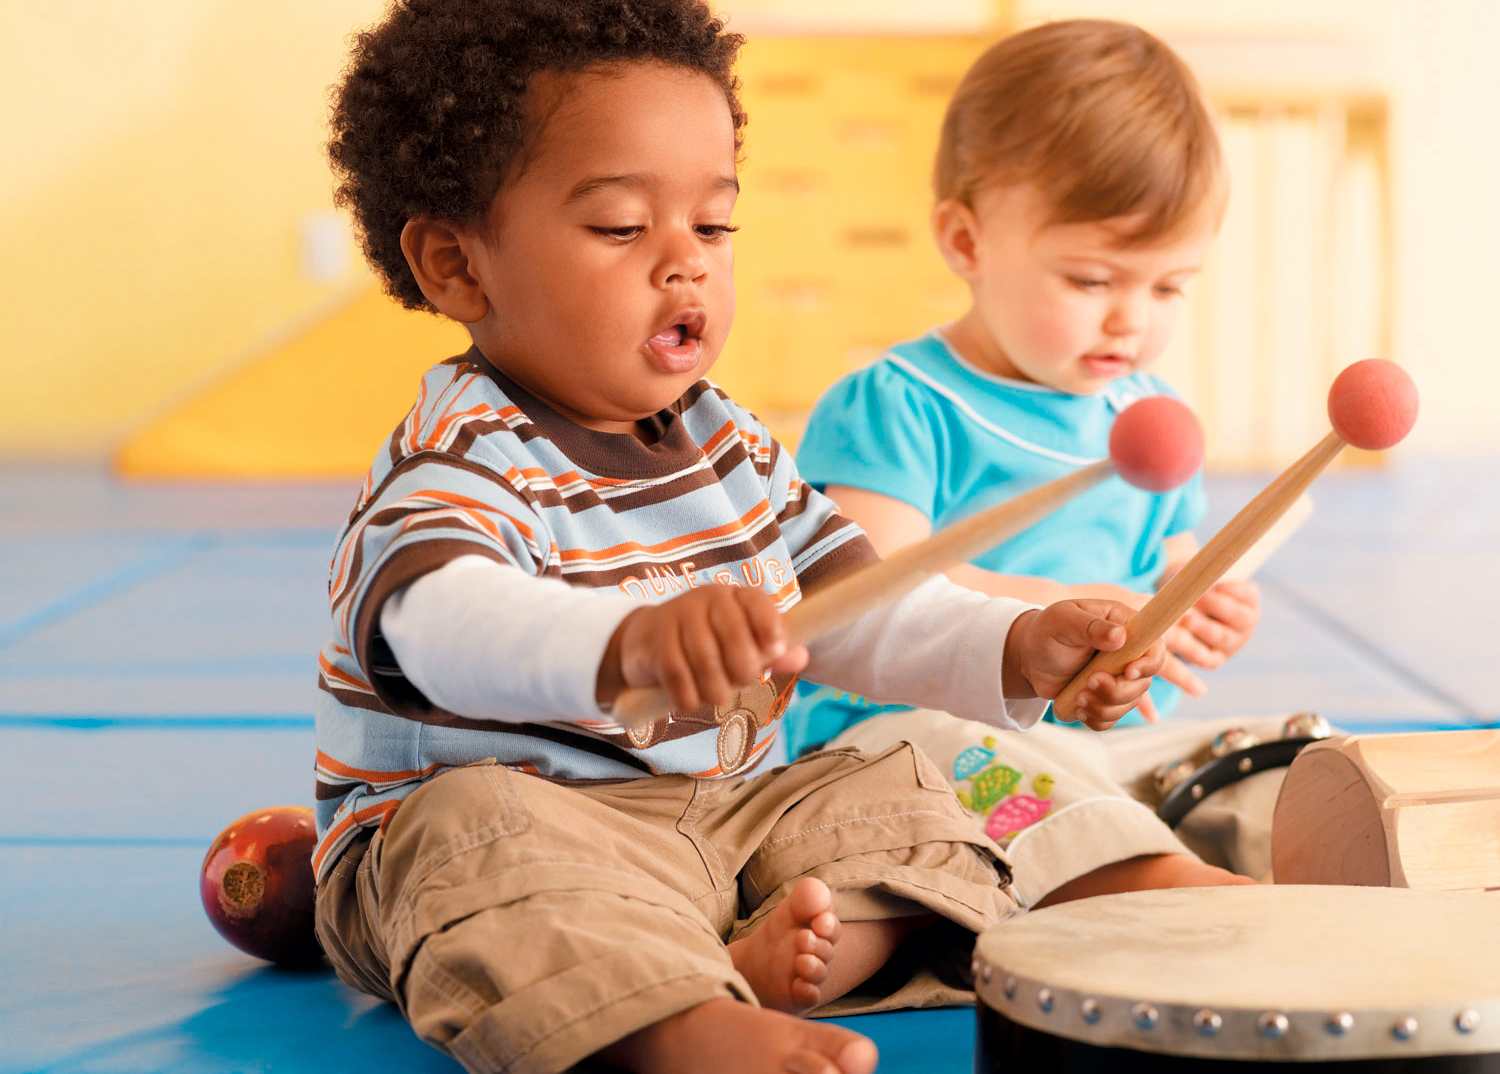 music and children Music has a power that goes beyond words the pleasure of sharing music  builds connections between parent and child as sounds and.